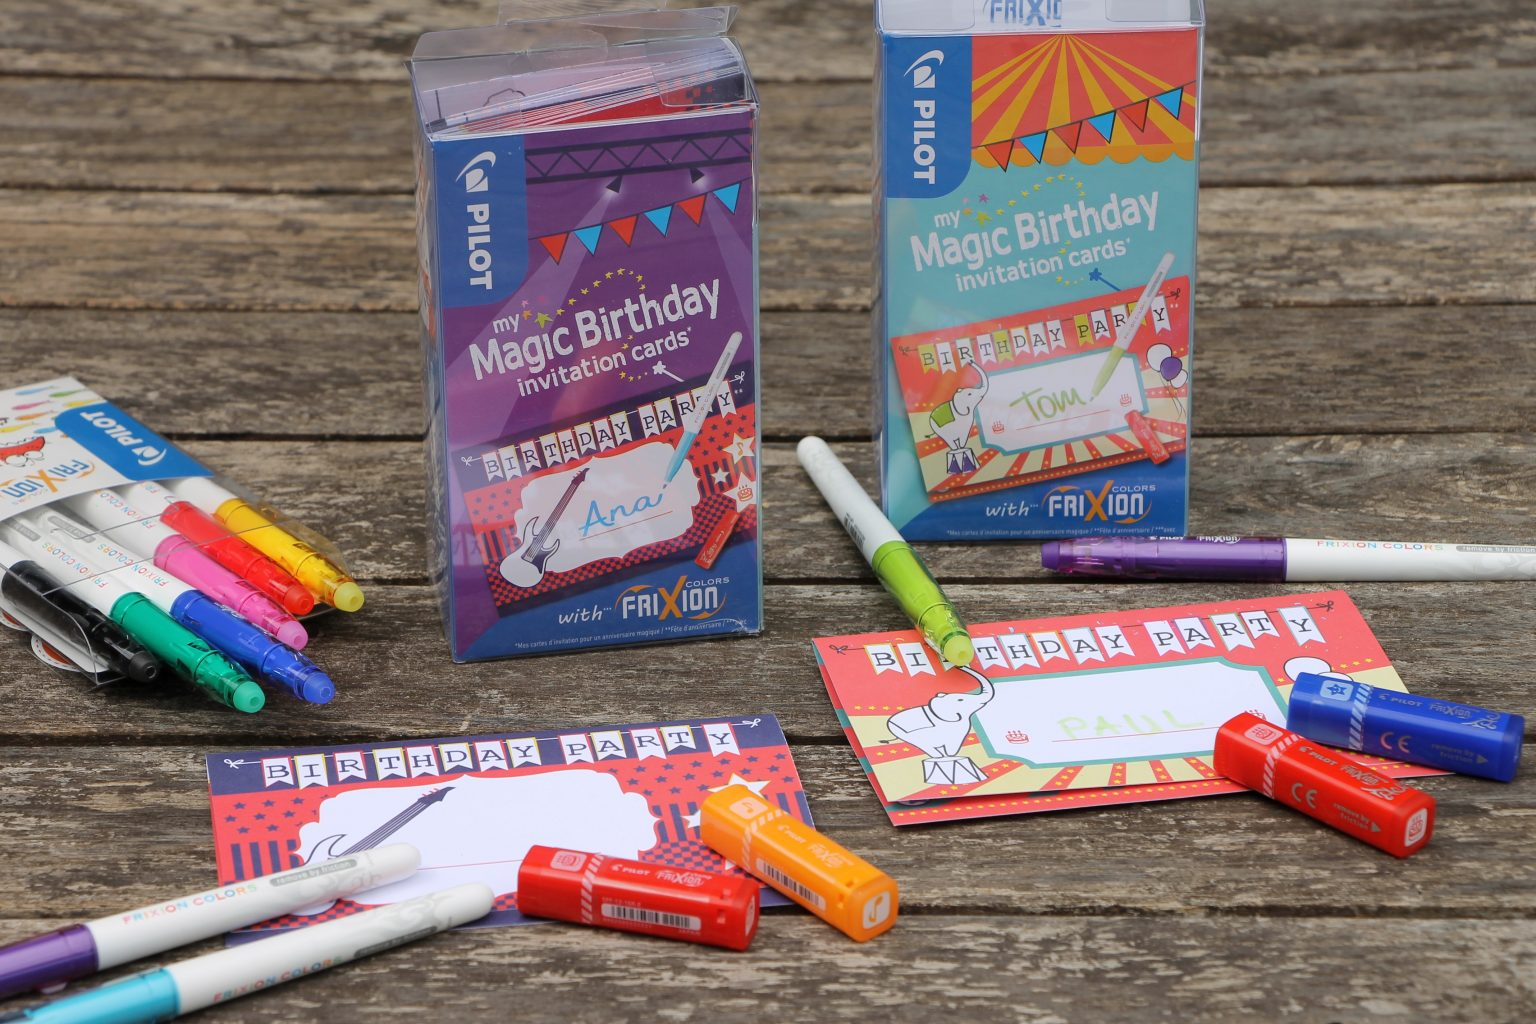 PILOT myMagic Birthday Cards Erfahrungen